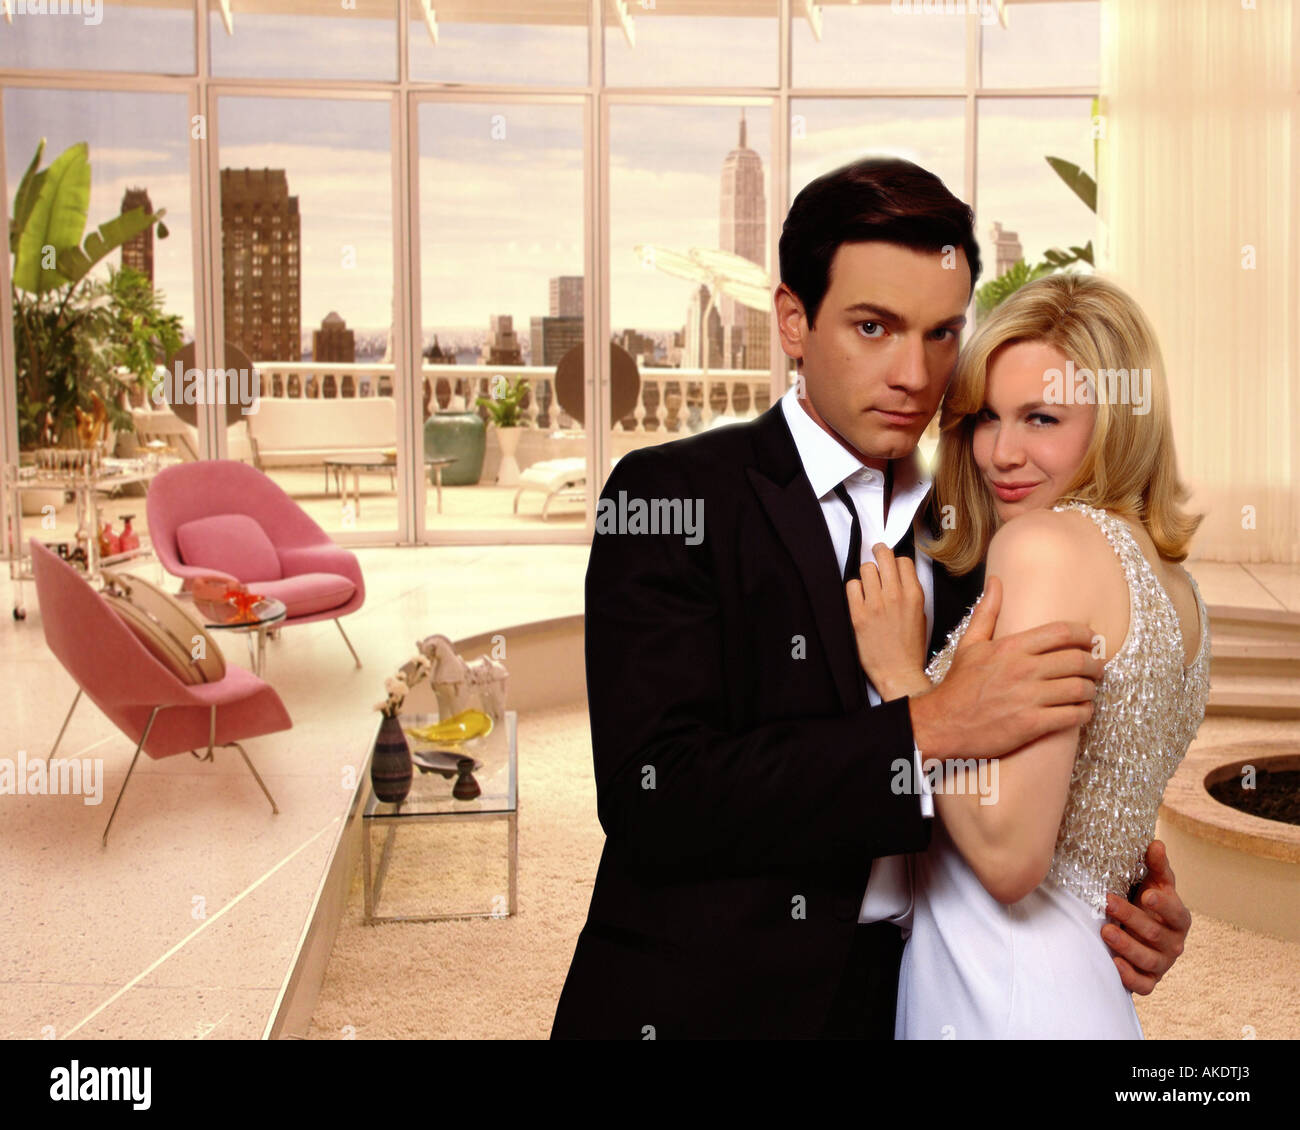 DOWN WITH LOVE 2003 TCF Fox film with Ewan McGregor and Renee Zellweger - Stock Image